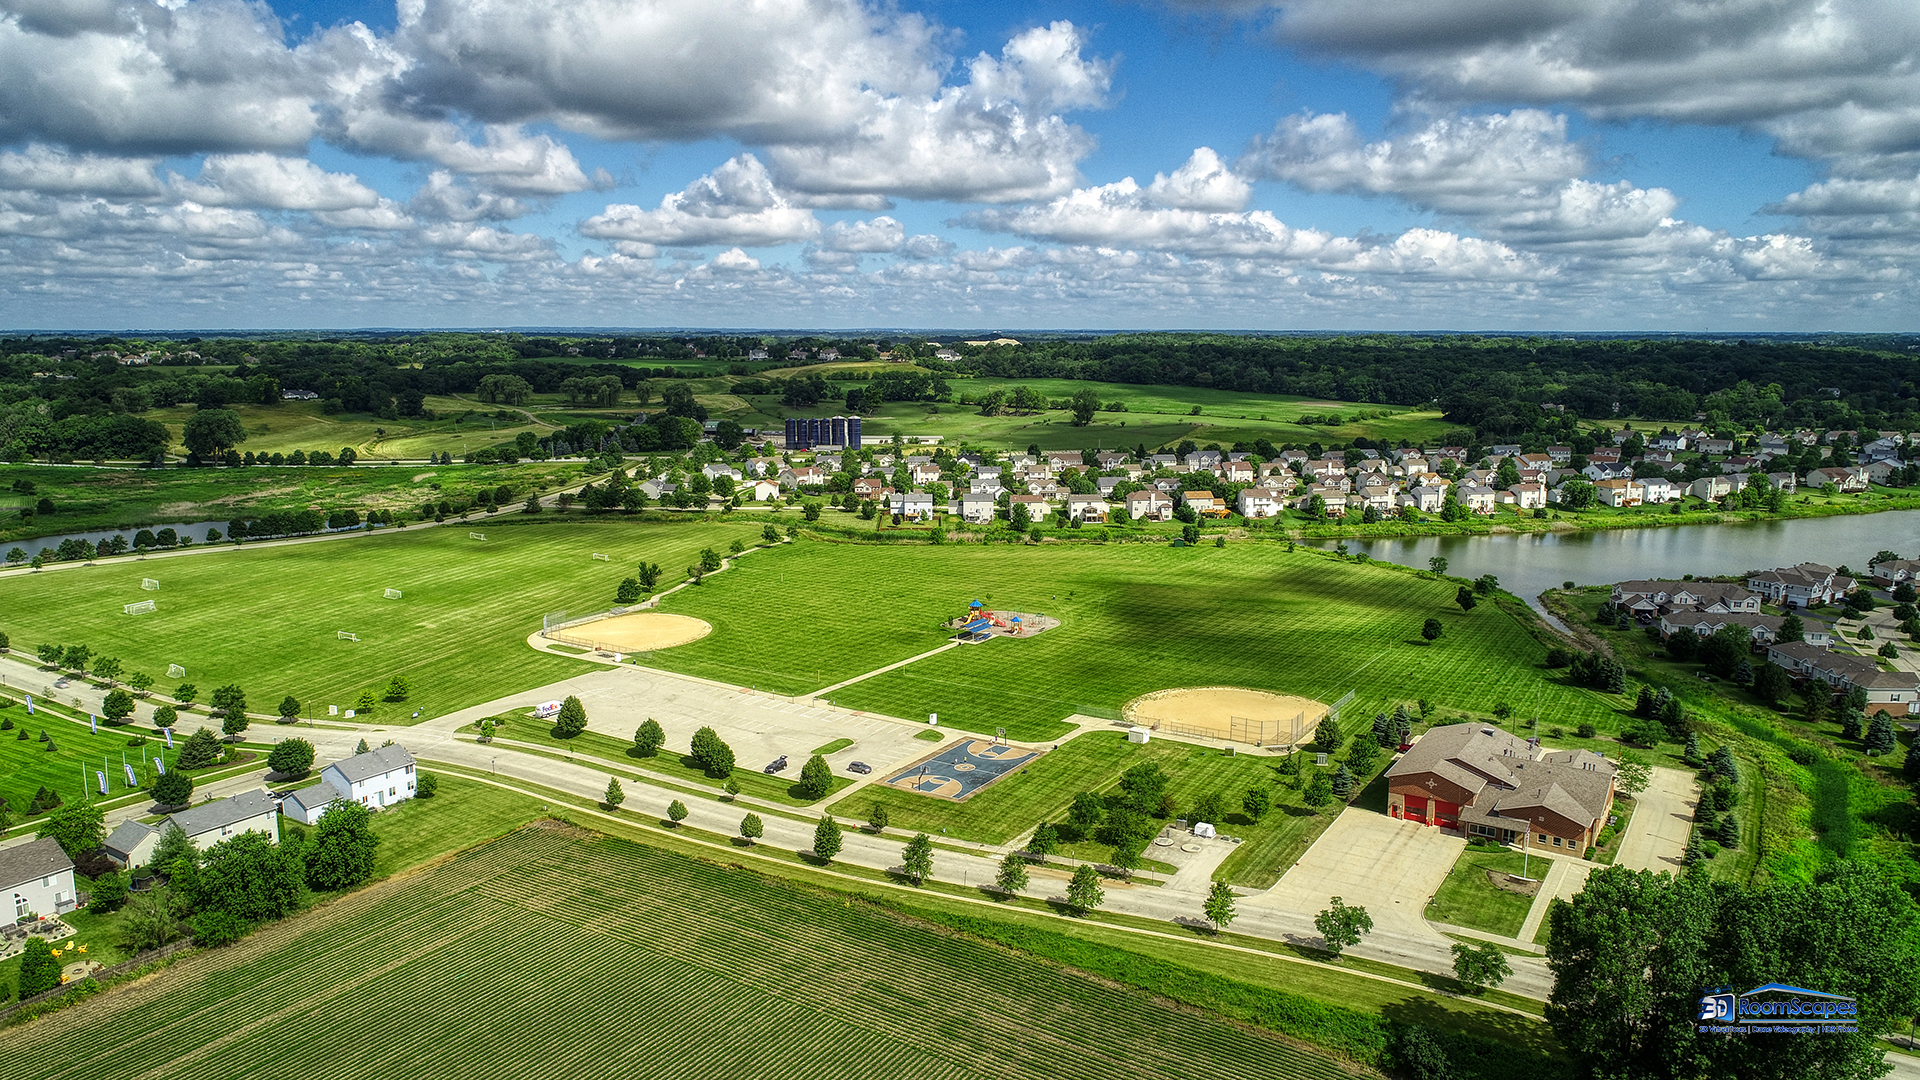 6613 Galway, McHenry, Illinois, 60050